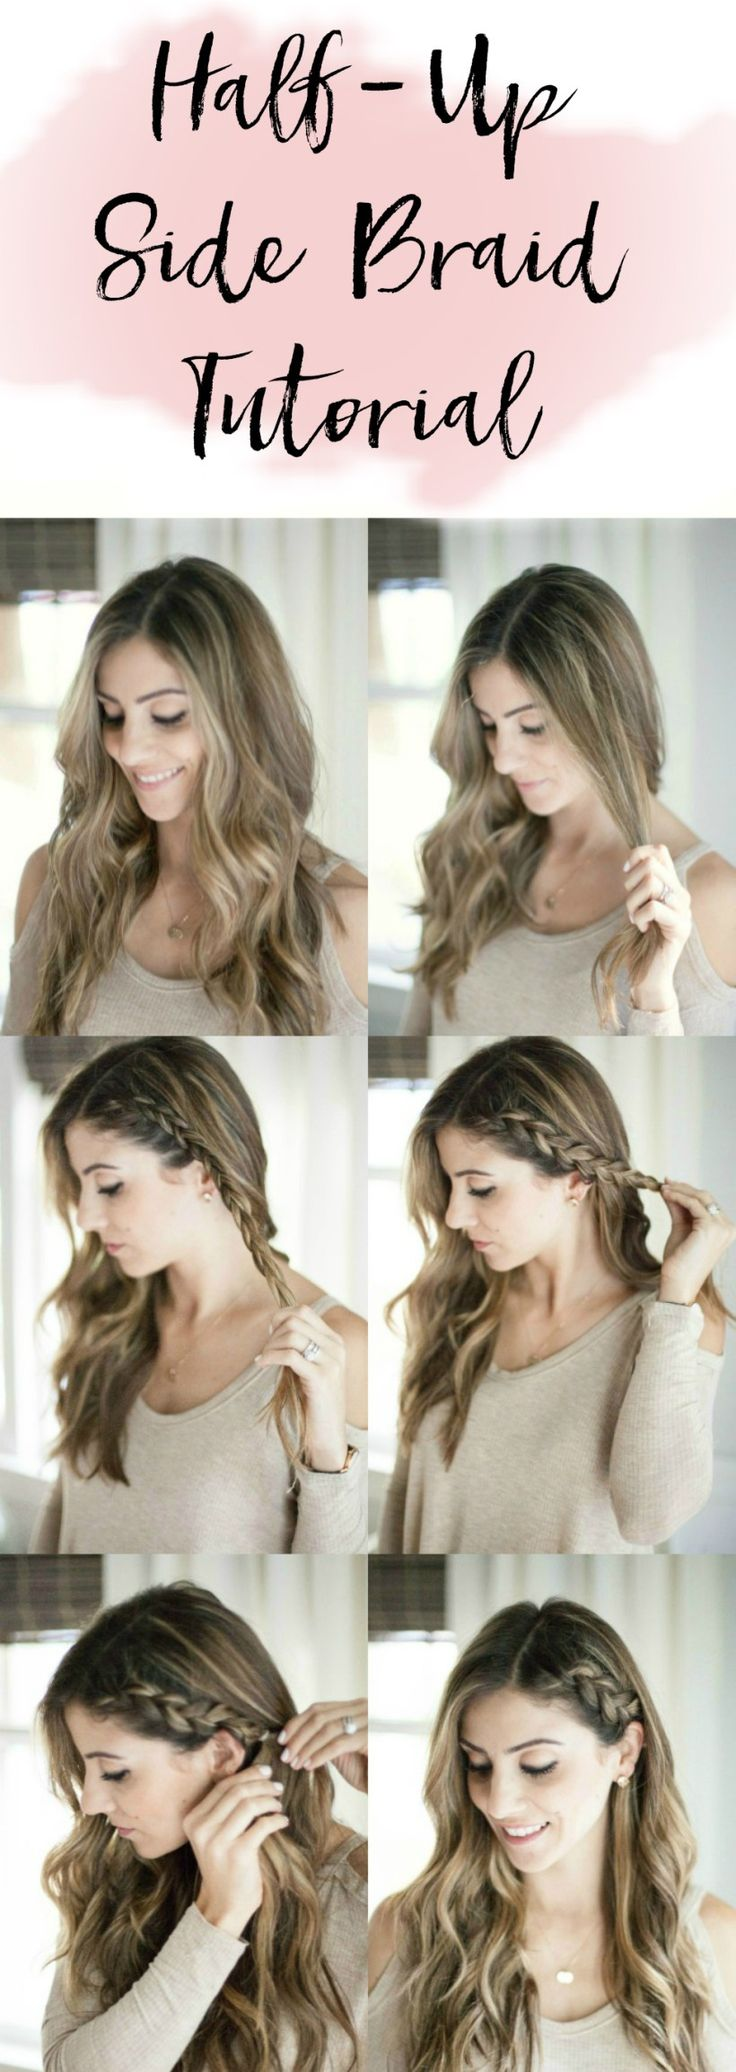 Pleasing 1000 Ideas About Braided Hair Tutorials On Pinterest Braid Hair Hairstyle Inspiration Daily Dogsangcom